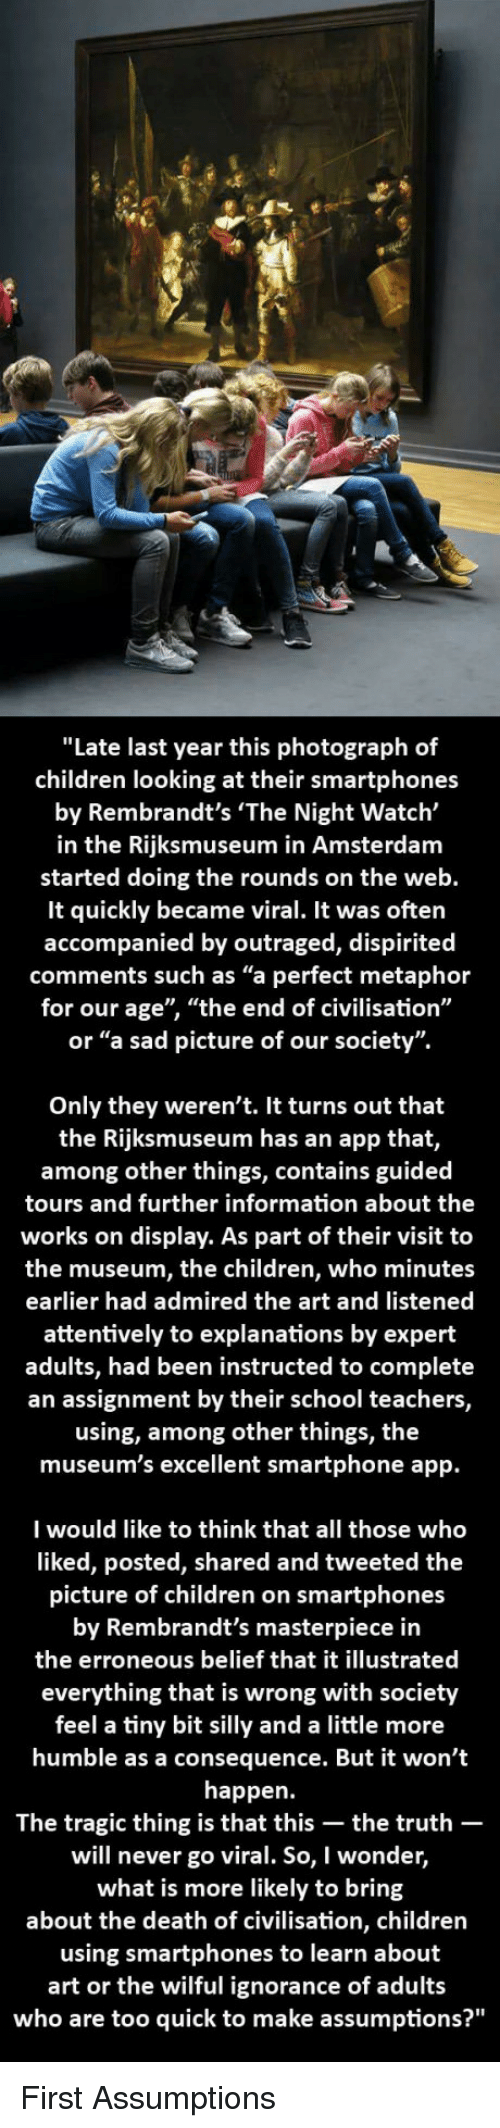 "Children, School, and Amsterdam: ""Late last year this photograph of  children looking at their smartphones  by Rembrandt's 'The Night Watch'  in the Rijksmuseum in Amsterdam  started doing the rounds on the web  It quickly became viral. It was often  accompanied by outraged, dispirited  comments such as ""a perfect metaphor  for our age"", ""the end of civilisation""  or ""a sad picture of our society"".  Only they weren't. It turns out that  the Rijksmuseum has an app that,  among other things, contains guided  tours and further information about the  works on display. As part of their visit to  the museum, the children, who minutes  earlier had admired the art and listened  attentively to explanations by expert  adults, had been instructed to complete  an assignment by their school teachers,  using, among other things, the  museum's excellent smartphone app.  I would like to think that all those who  liked, posted, shared and tweeted the  picture of children on smartphones  by Rembrandt's masterpiece in  the erroneous belief that it illustrated  everything that is wrong with society  feel a tiny bit silly and a little more  humble as a consequence. But it won't  happen.  The tragic thing is that this-the truth-  will never go viral. So, I wonder,  what is more likely to bring  about the death of civilisation, children  using smartphones to learn about  art or the wilful ignorance of adults  who are too quick to make assumptions?"" <p>First Assumptions</p>"